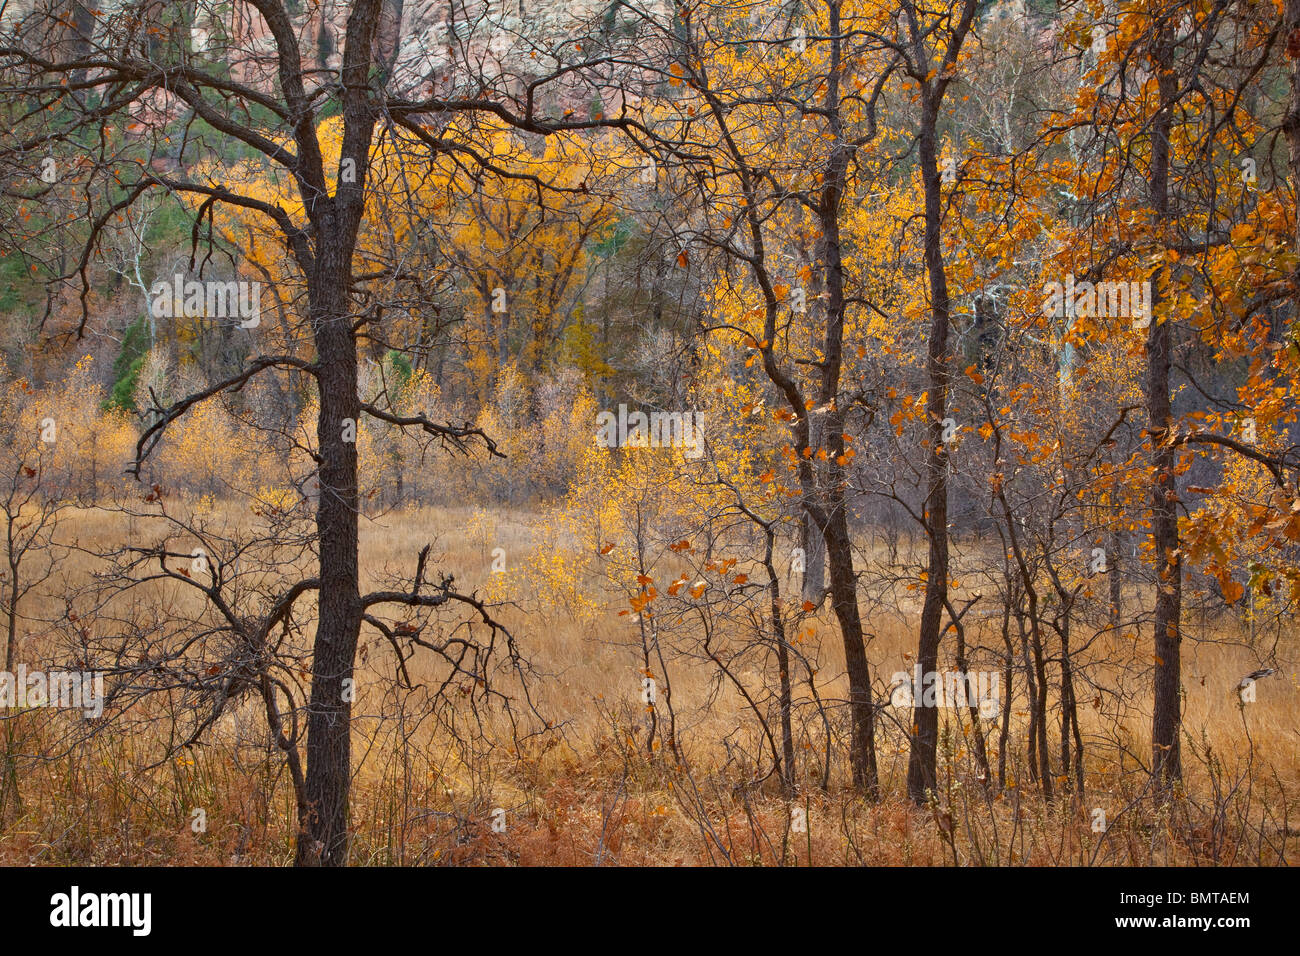 Autumn colors of oaks, willows ash and cottonwoods in Oak Creek Canyon Coconino National Forest, near Sedona, Arizona, - Stock Image